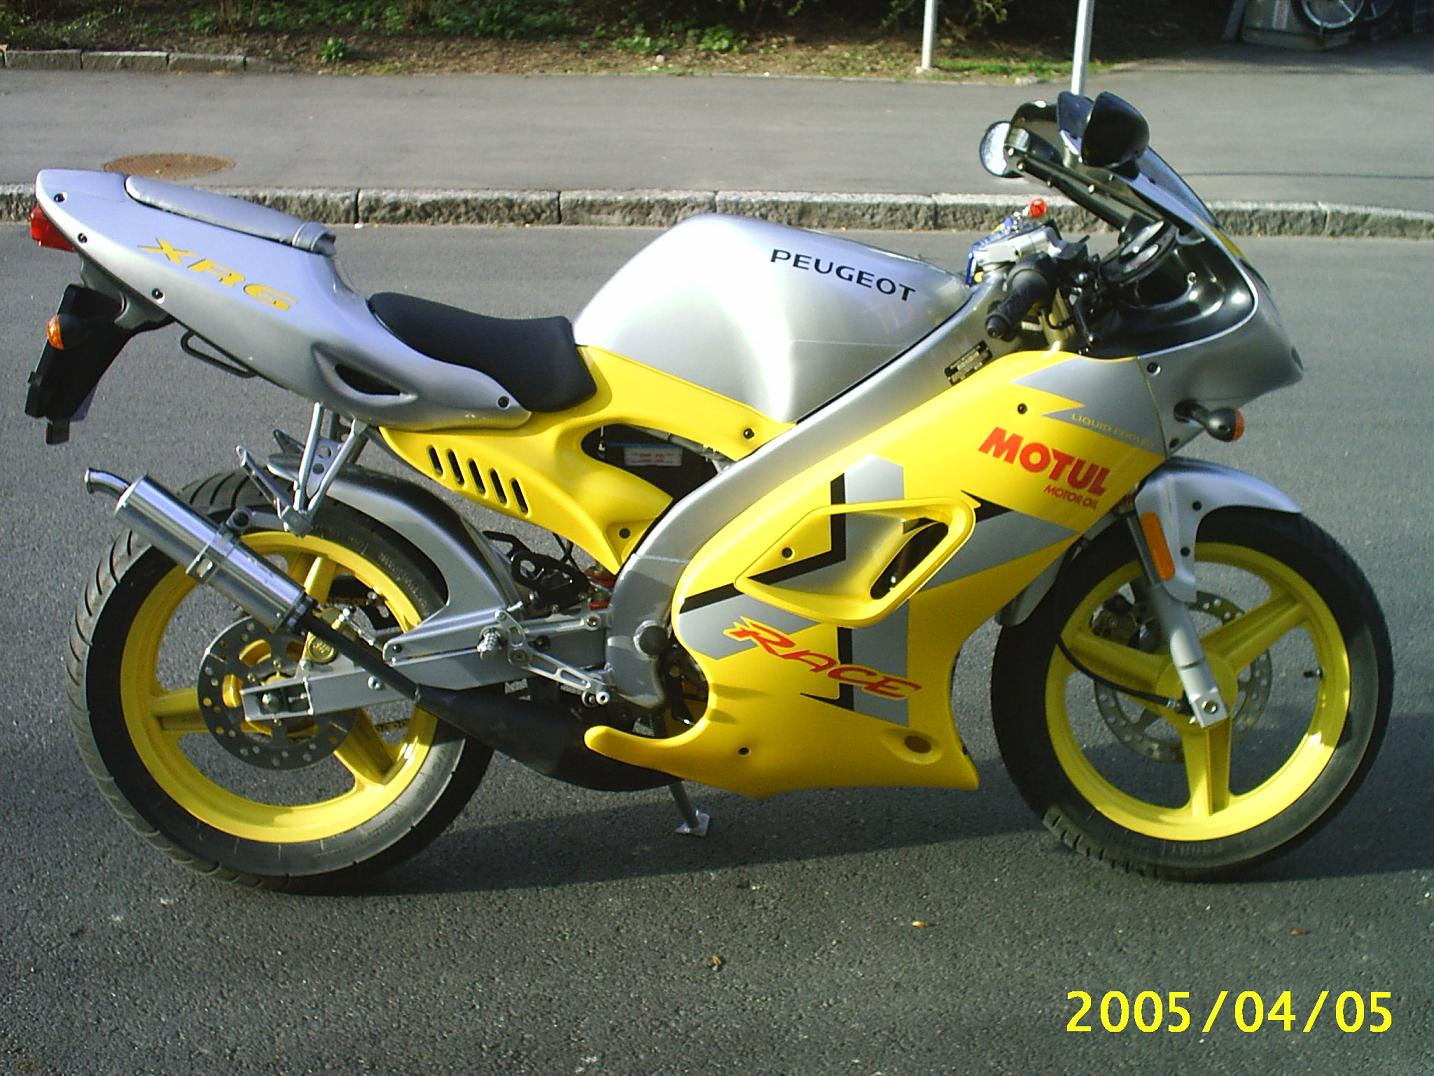 Peugeot Xr6 Picture 22236 Peugeot Photo Gallery